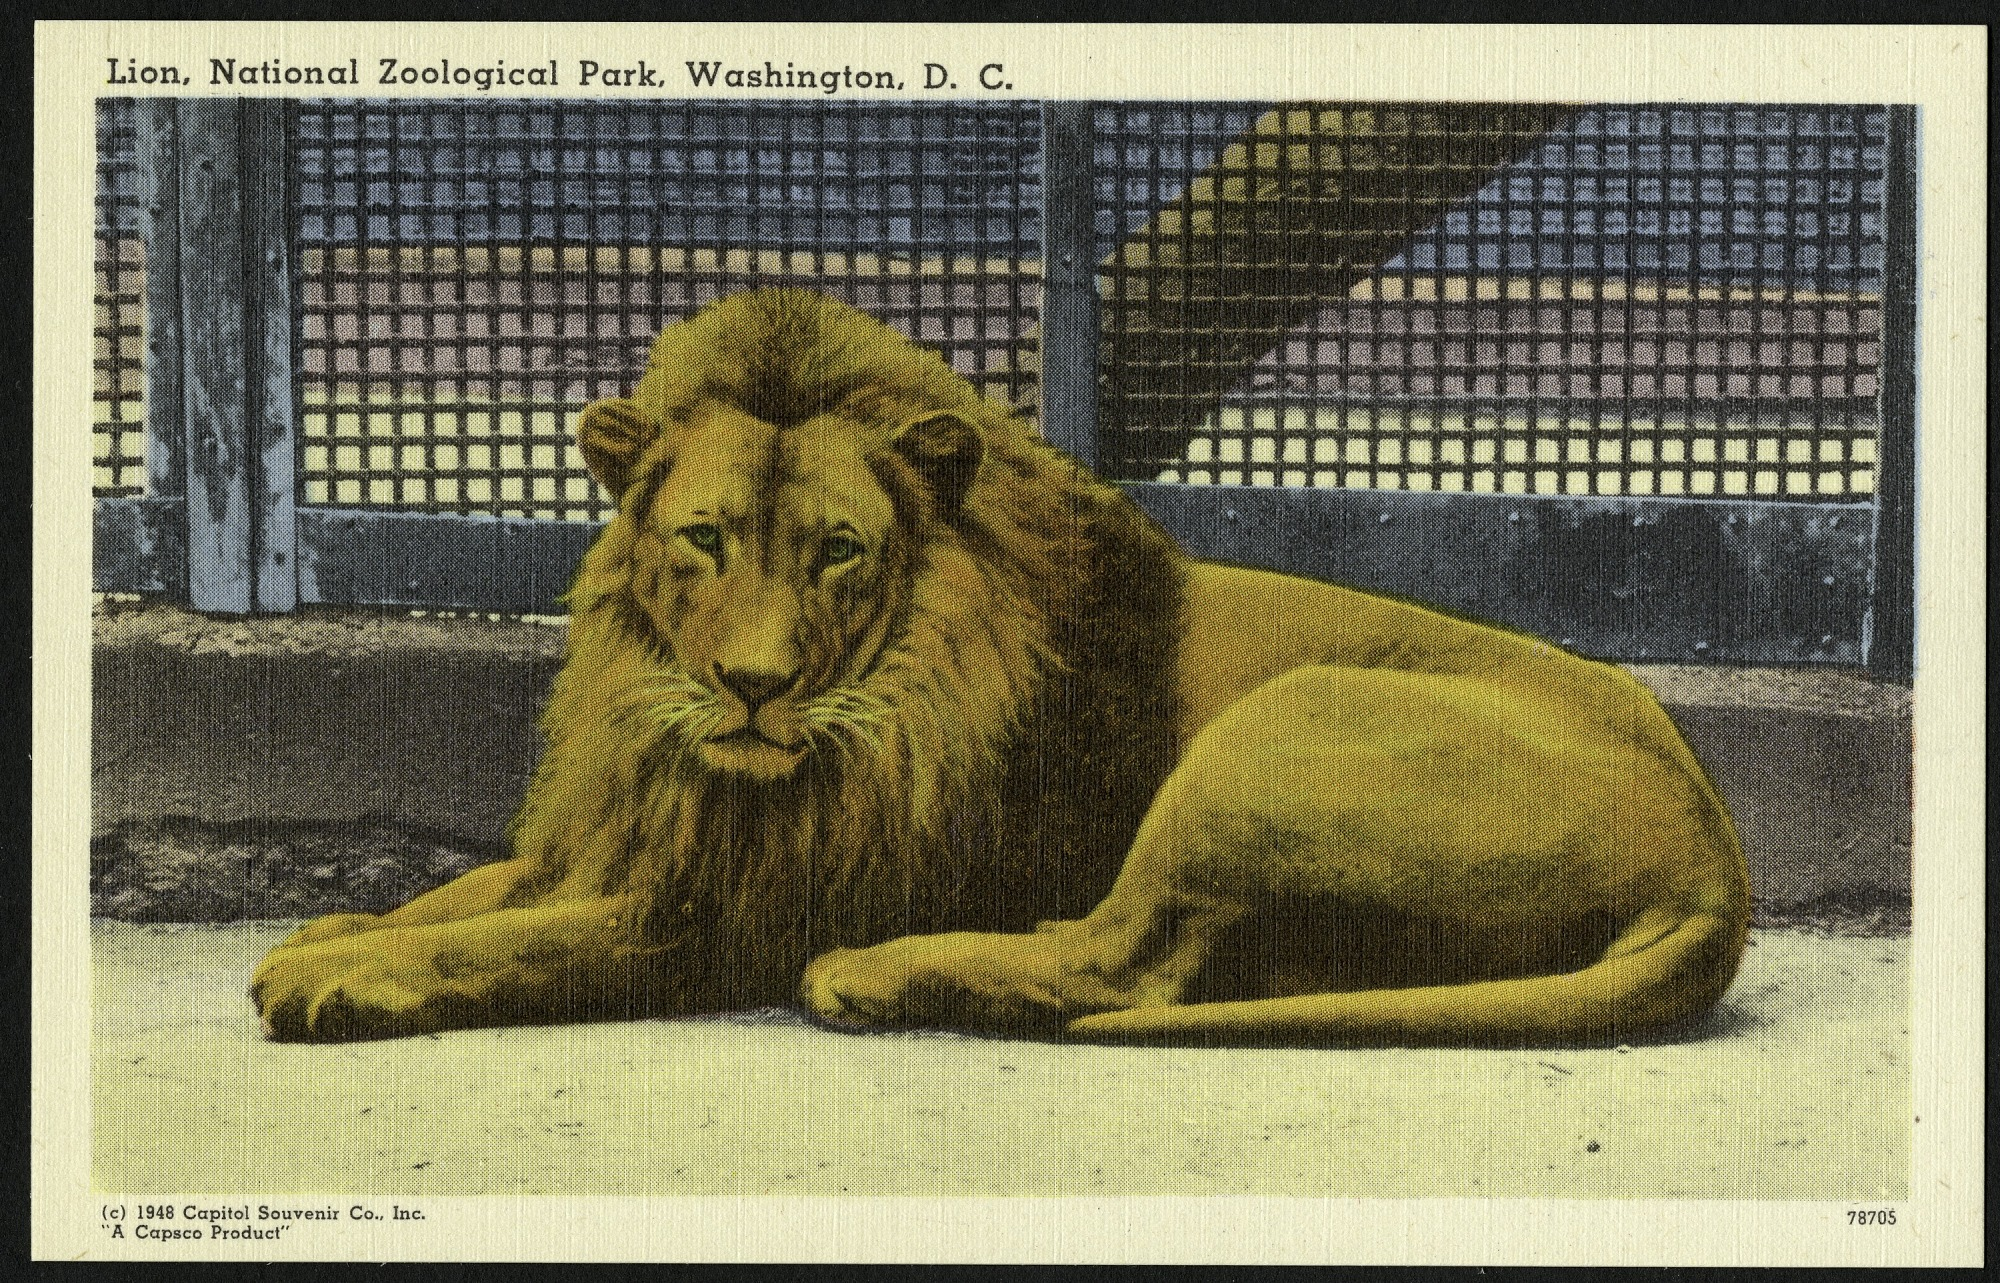 Blank Postcard of a Lion at the Zoo